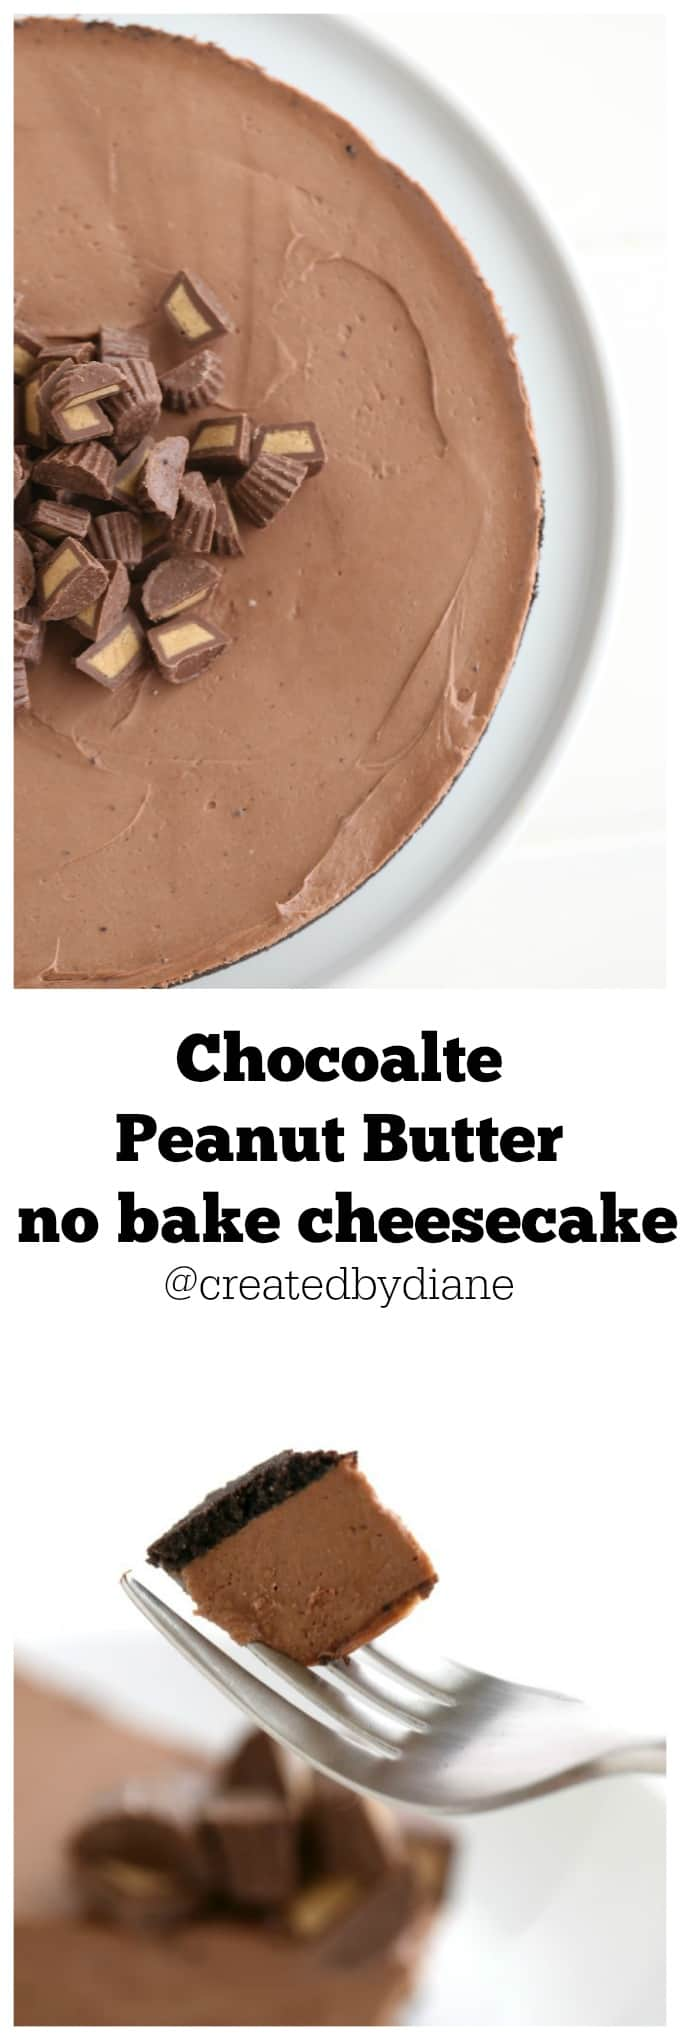 Chocolate Peanut Butter no bake Cheesecake @createdbydiane